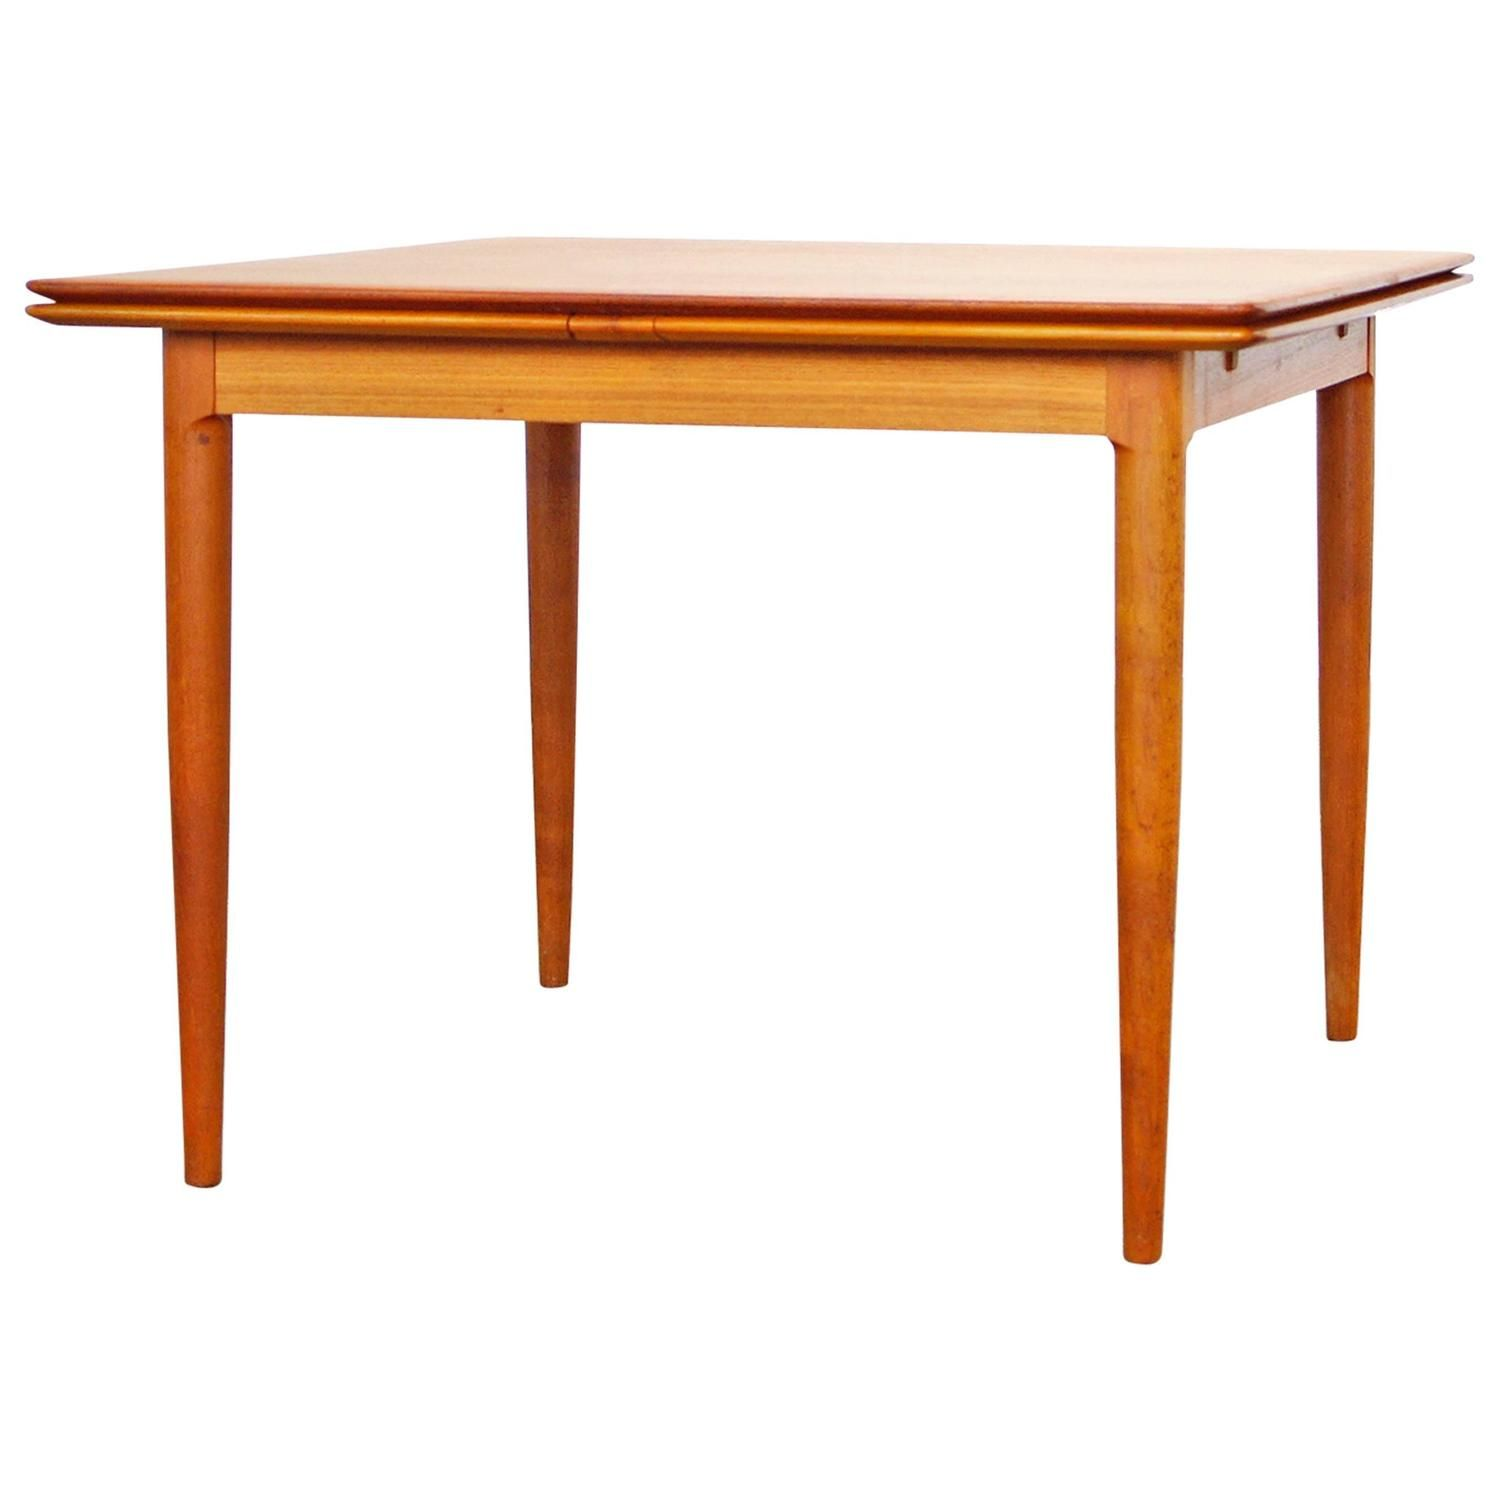 Danish Modern Teak Dining Tableskovmand & Andersen 1960S Mesmerizing Teak Dining Room Furniture Design Ideas